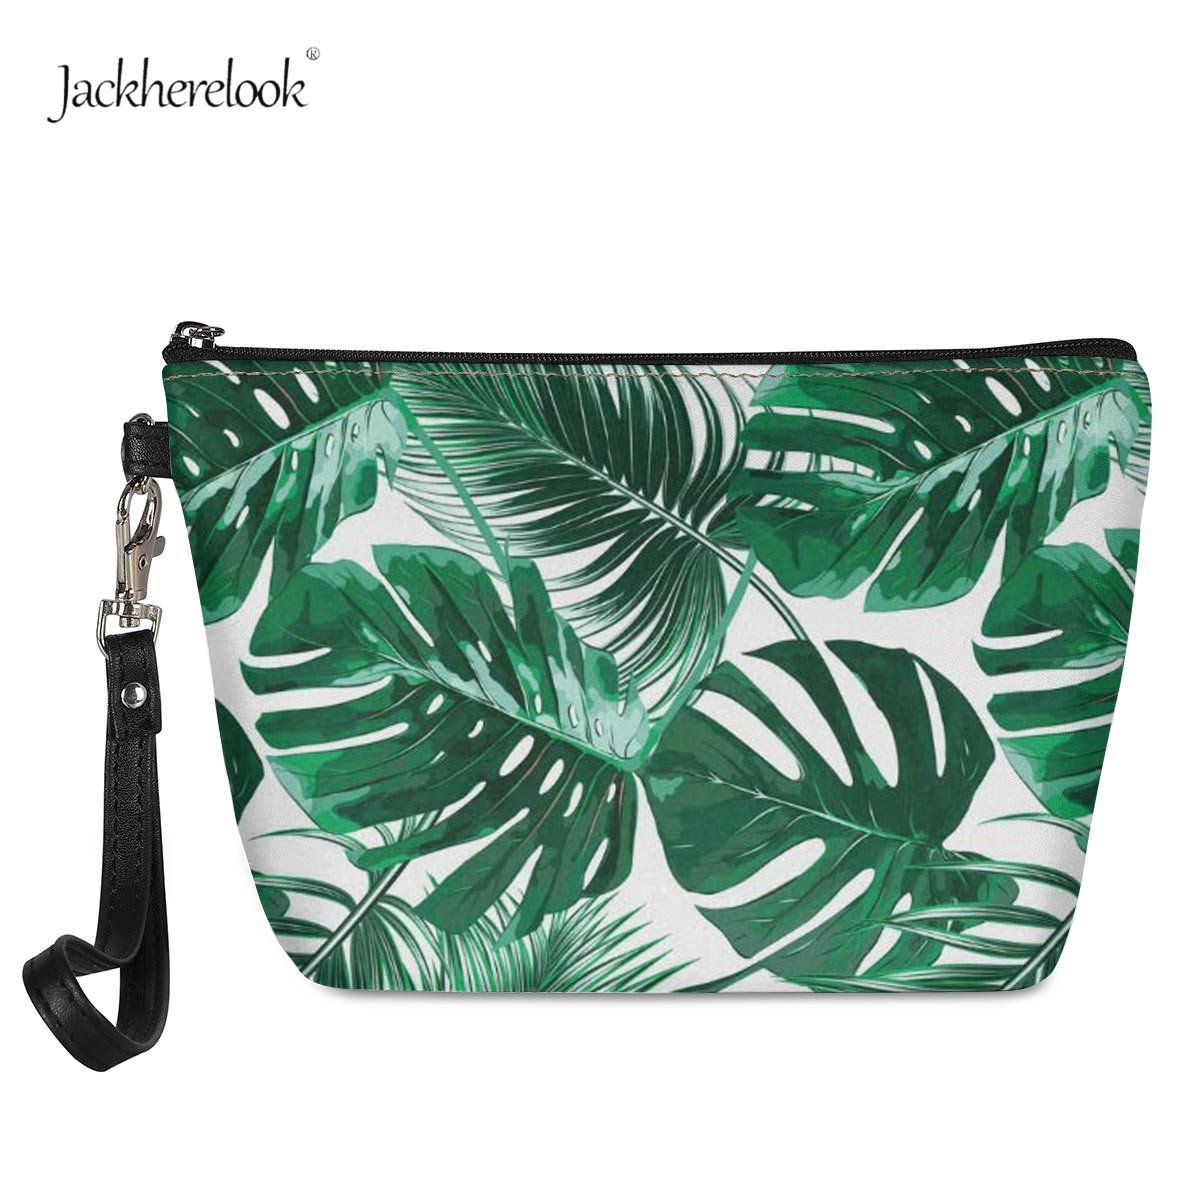 Jackherelook Green Leaves Cosmetic Bag Tropical Style Palm Tree Leaf Print Leather Makeup/Toiletry Pouch For Travelling Outdoor